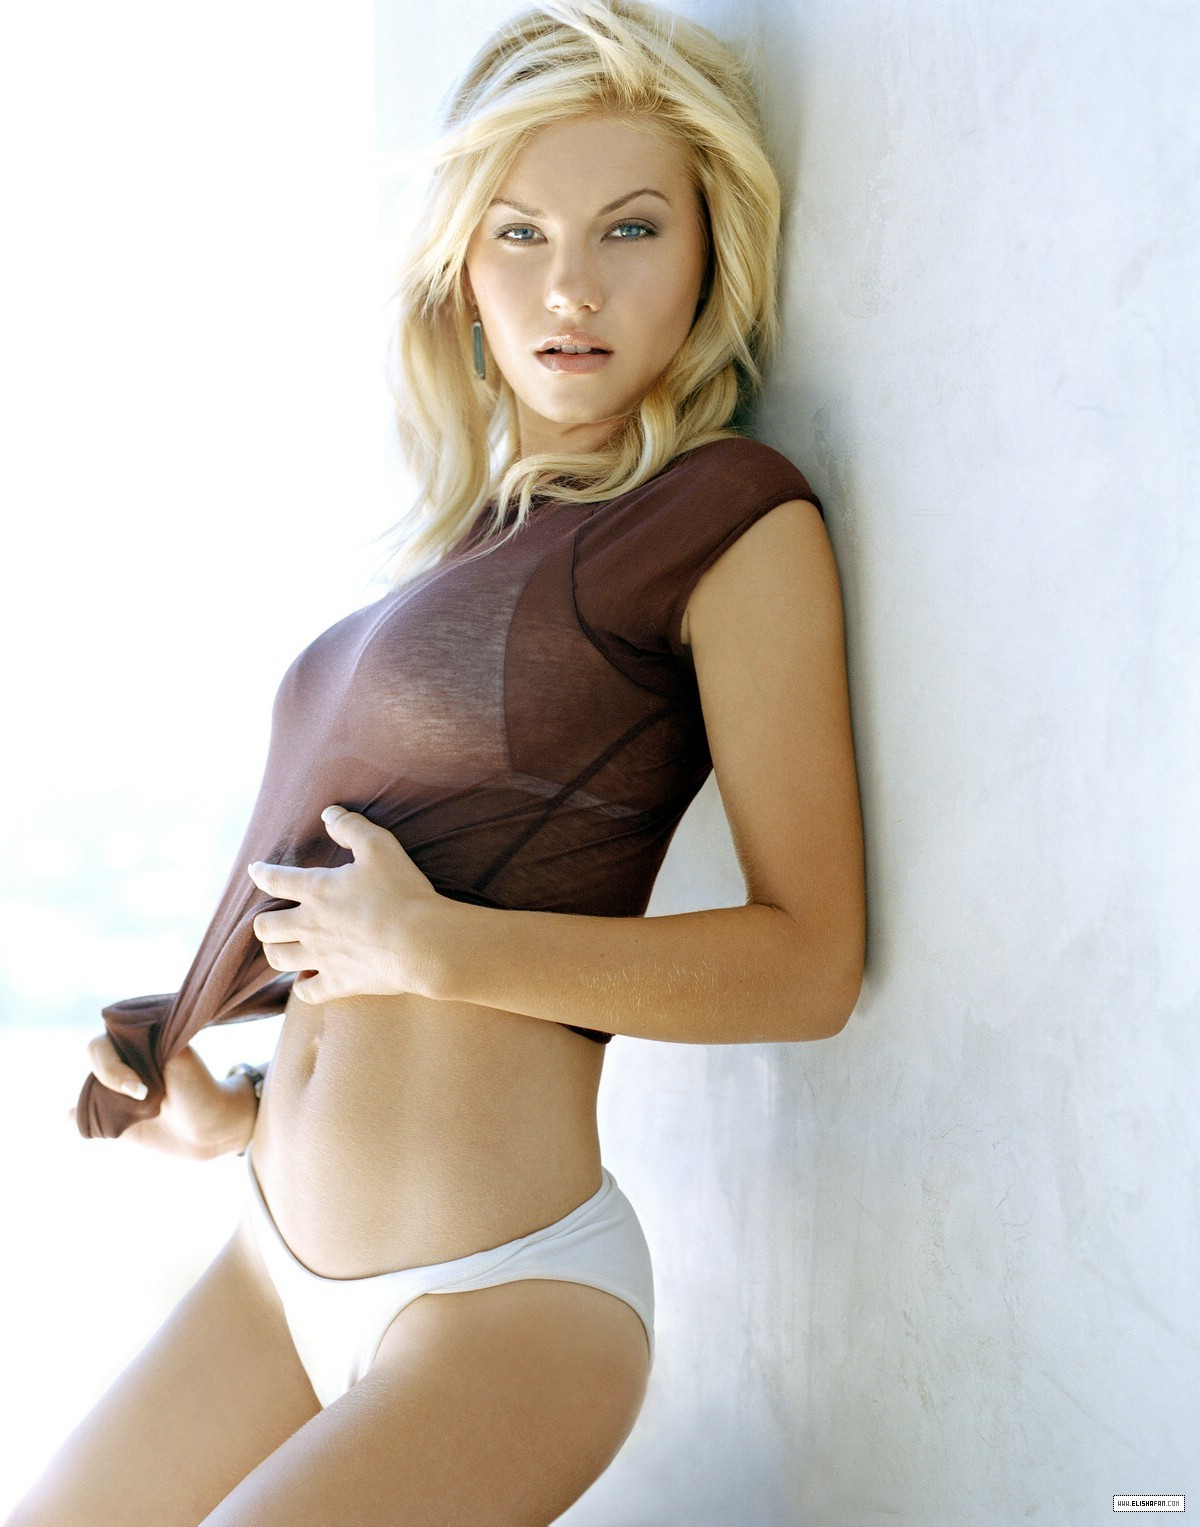 Elisha Elisha Cuthbert Photo 13579852 Fanpop